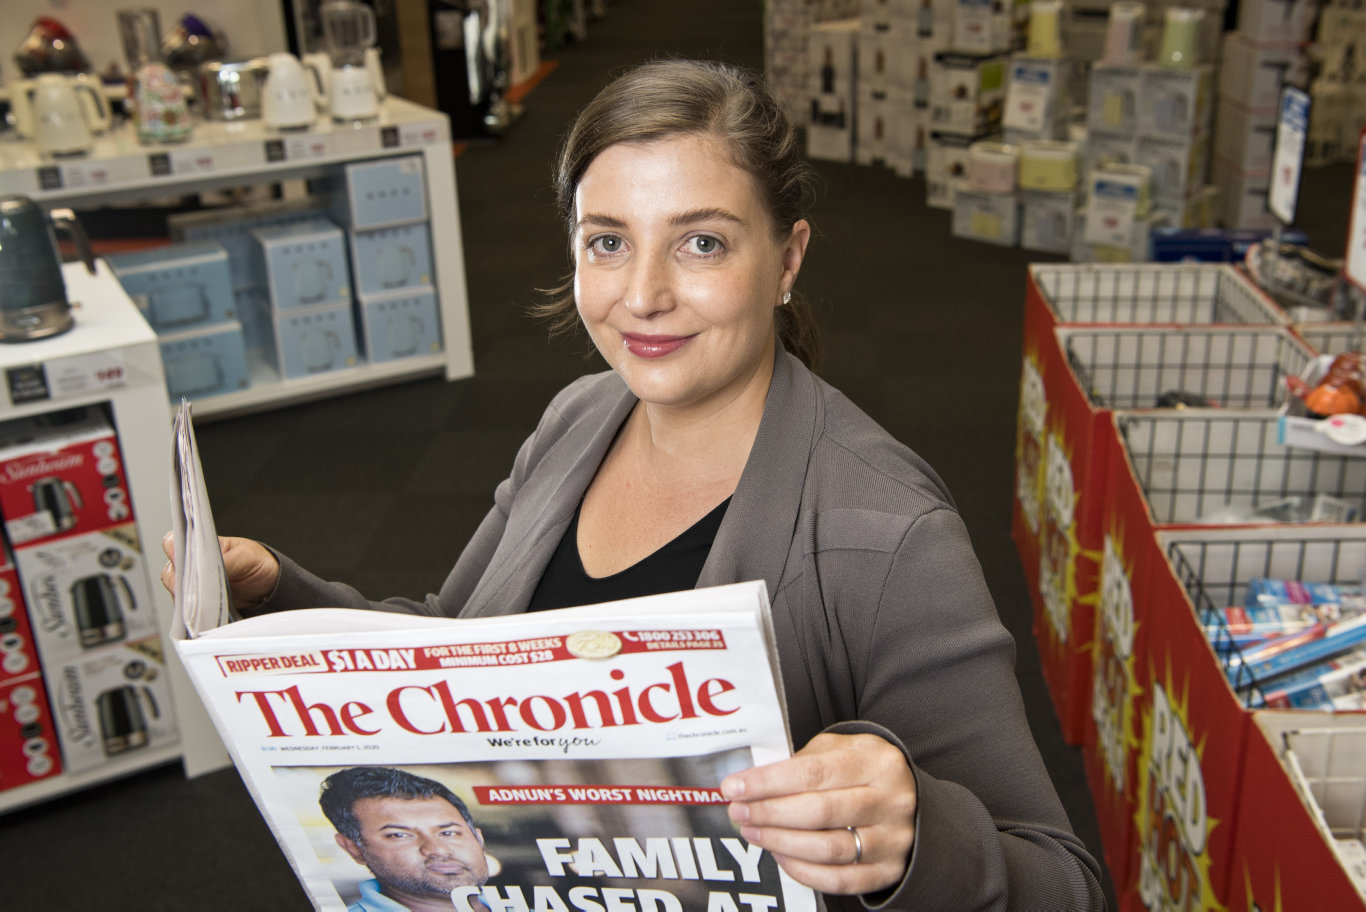 Harvey Norman Toowoomba electrical proprietor Cara Sherman is excited to see the new compact format of The Chronicle.